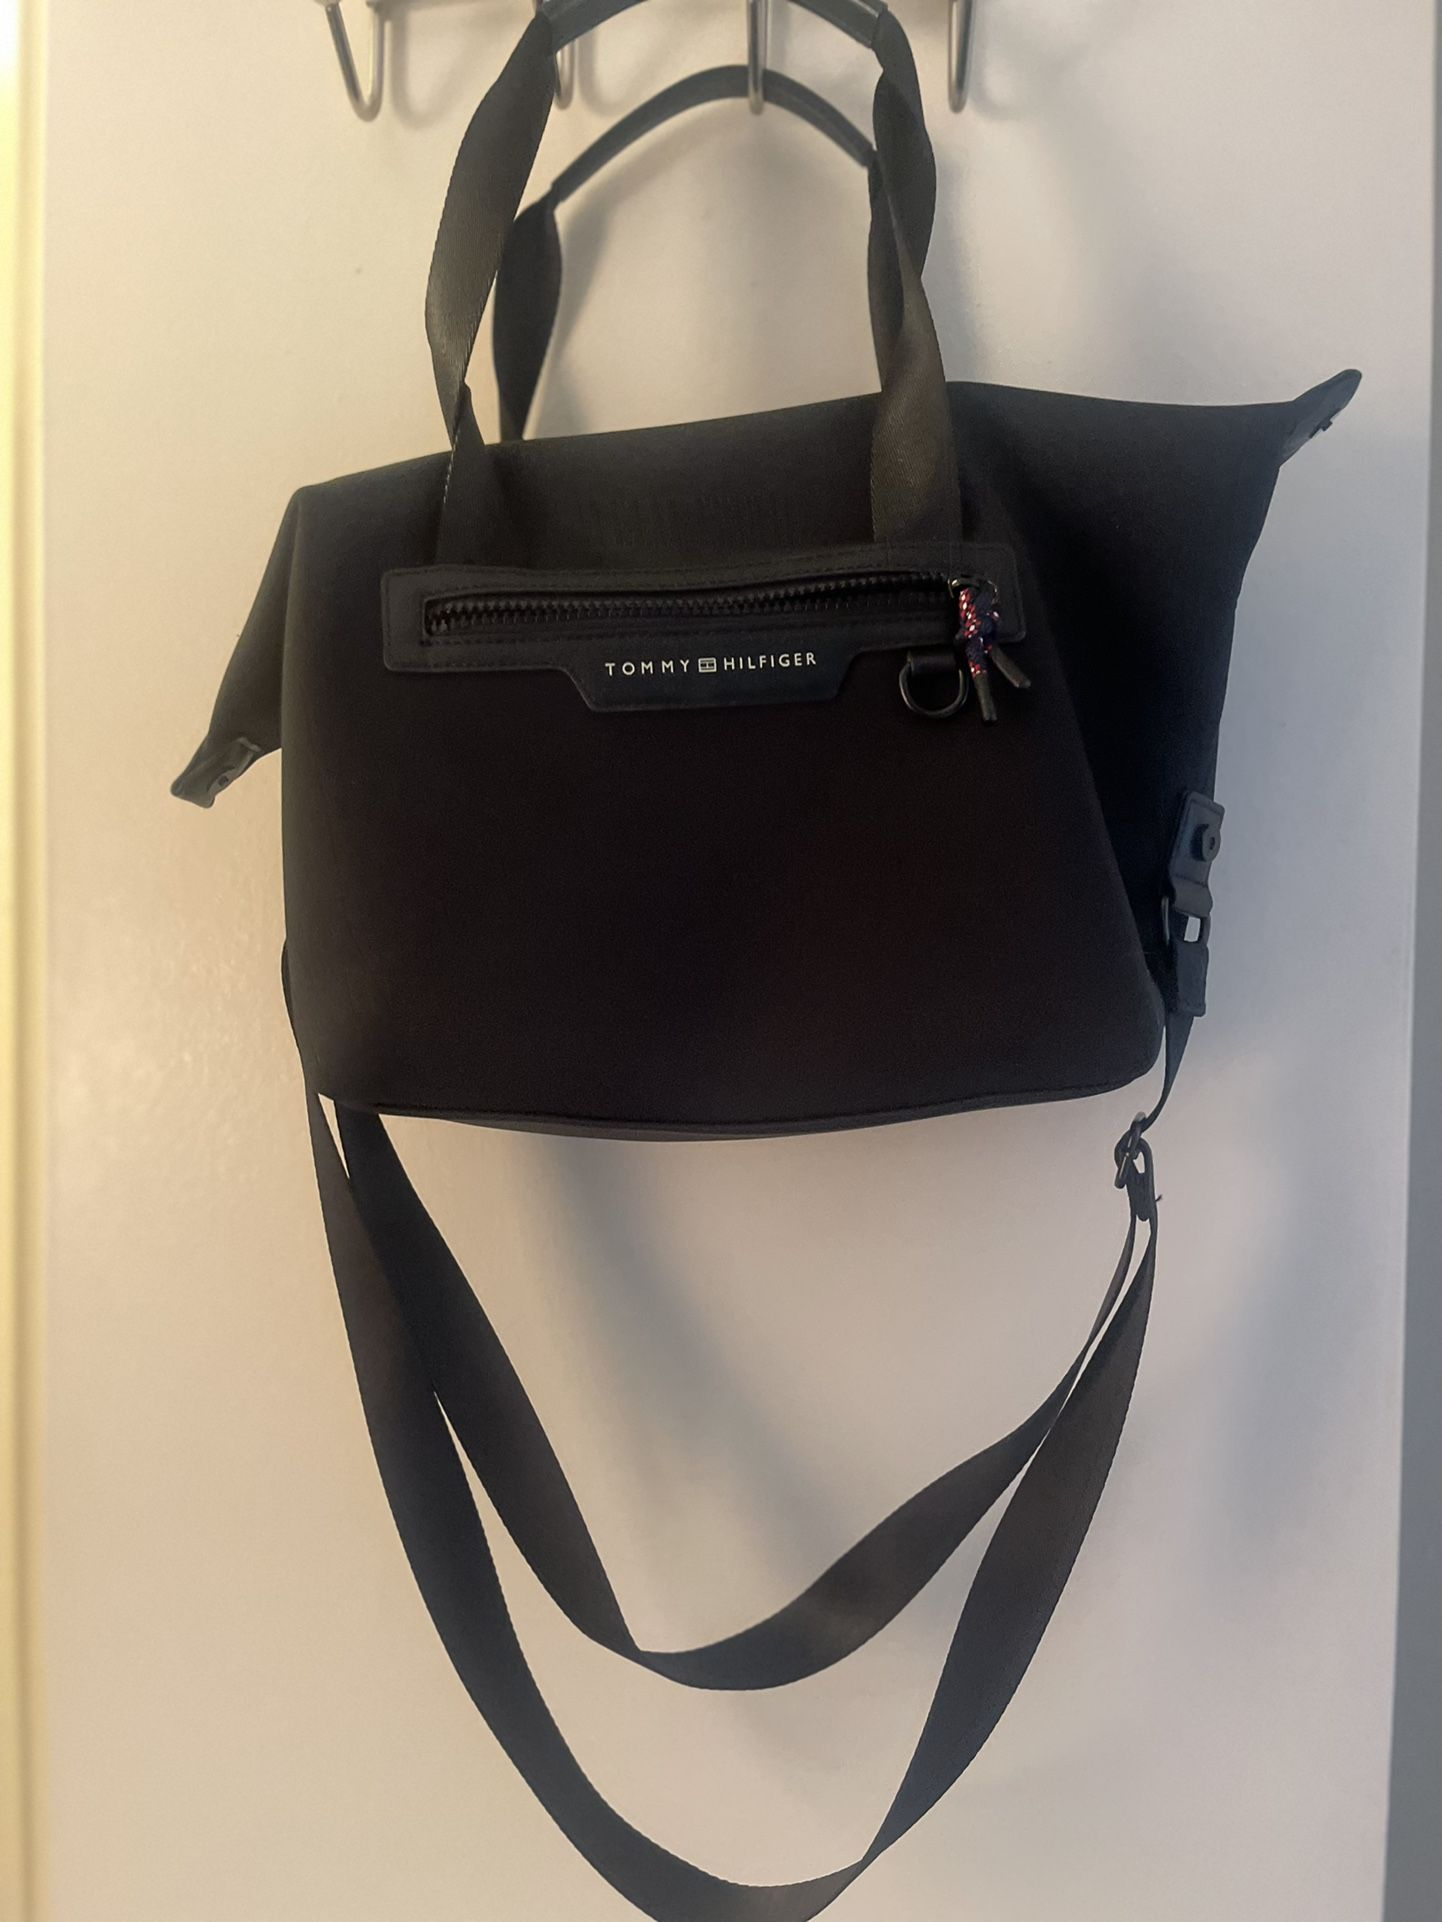 Tommy Hilfiger Small Tote Bag